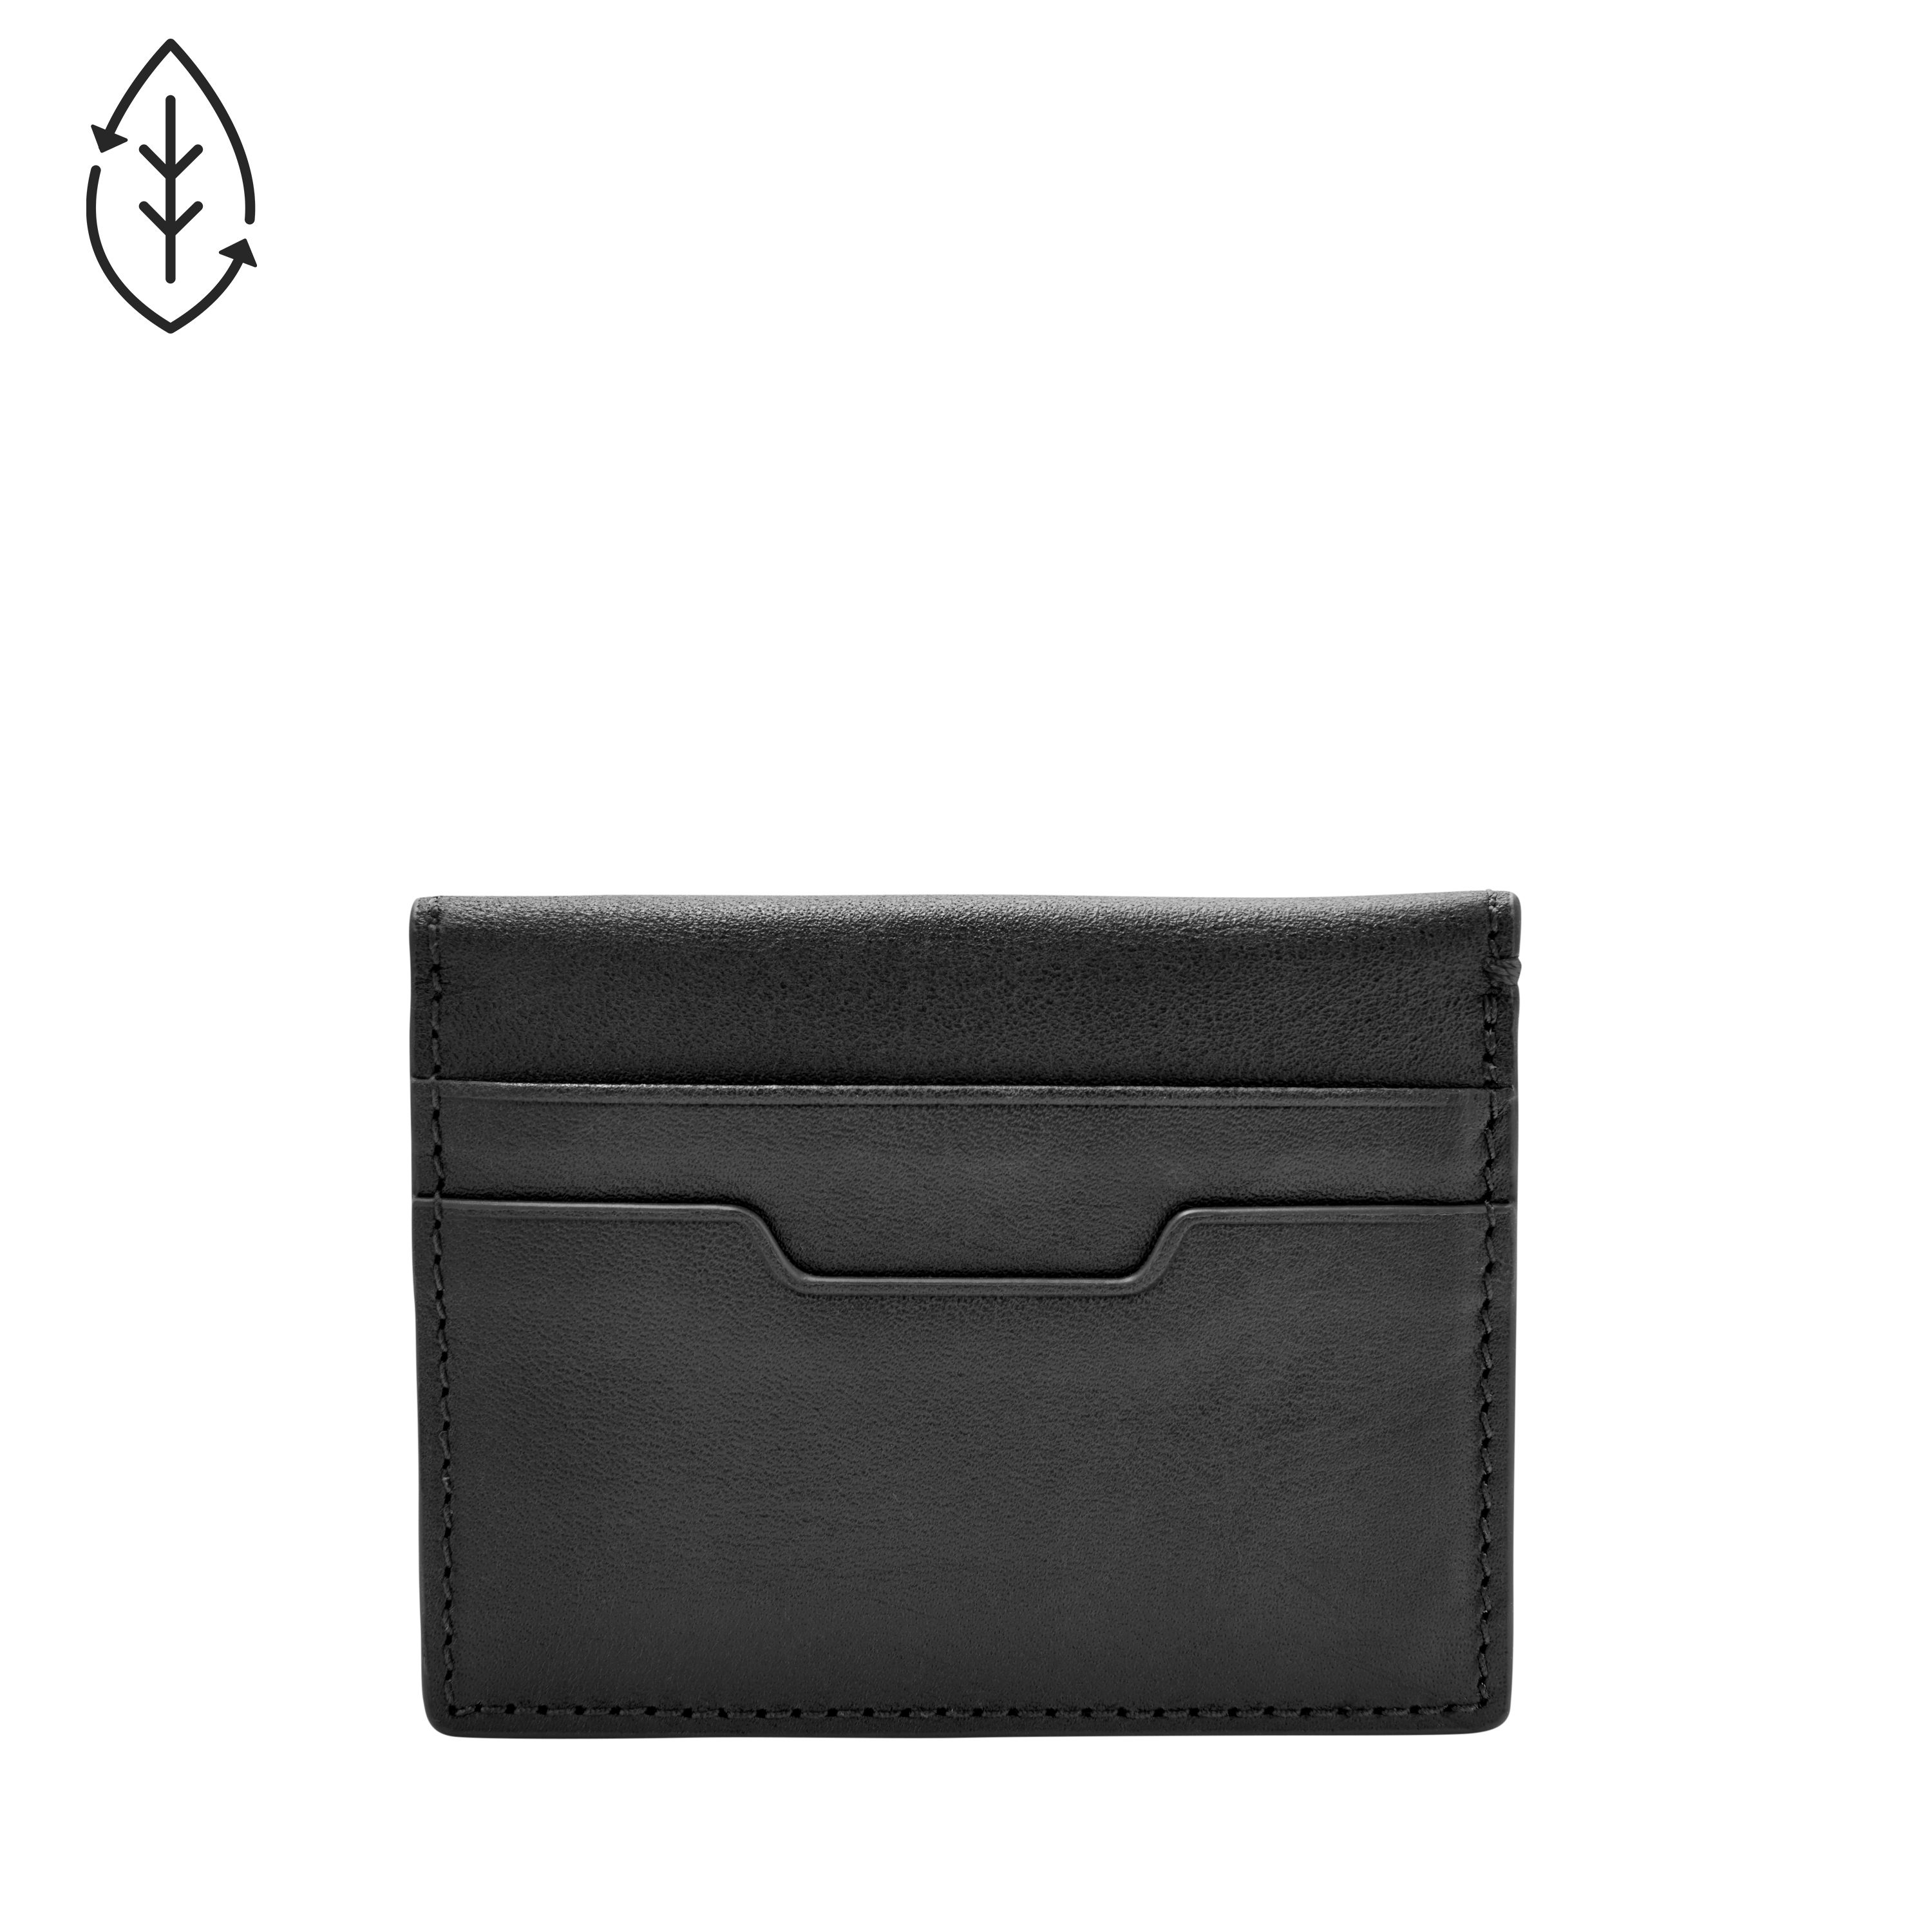 CARD CASES & MONEY CLIPS